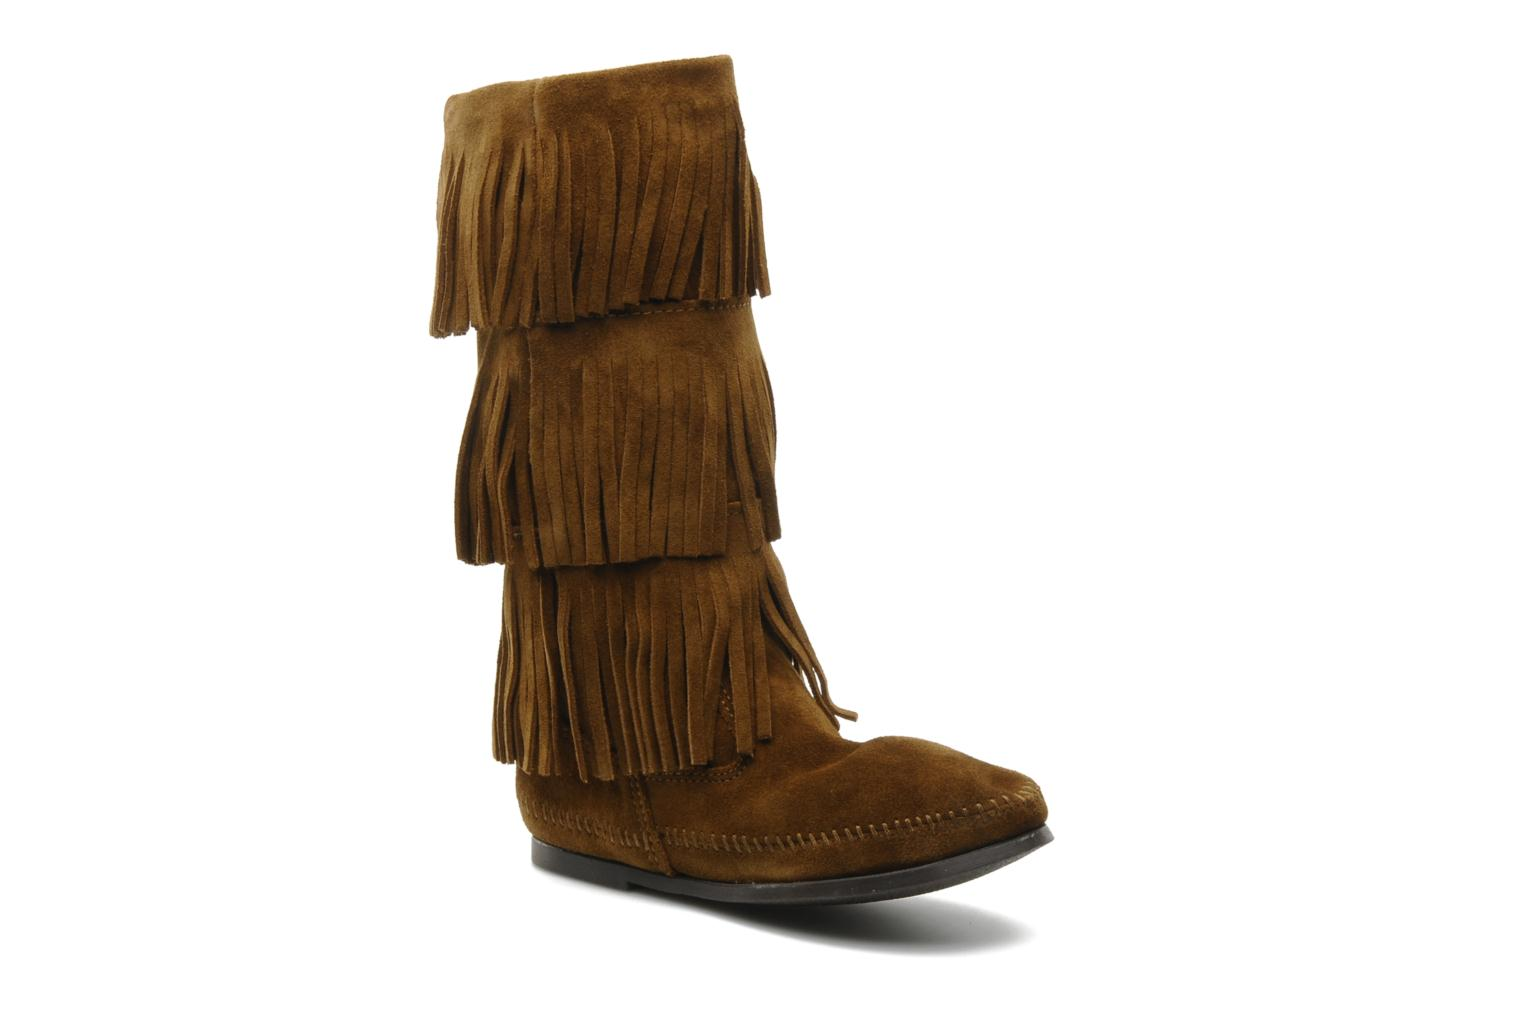 3 LAYER FRINGE BOOT by MinnetonkaRebajas - 10%